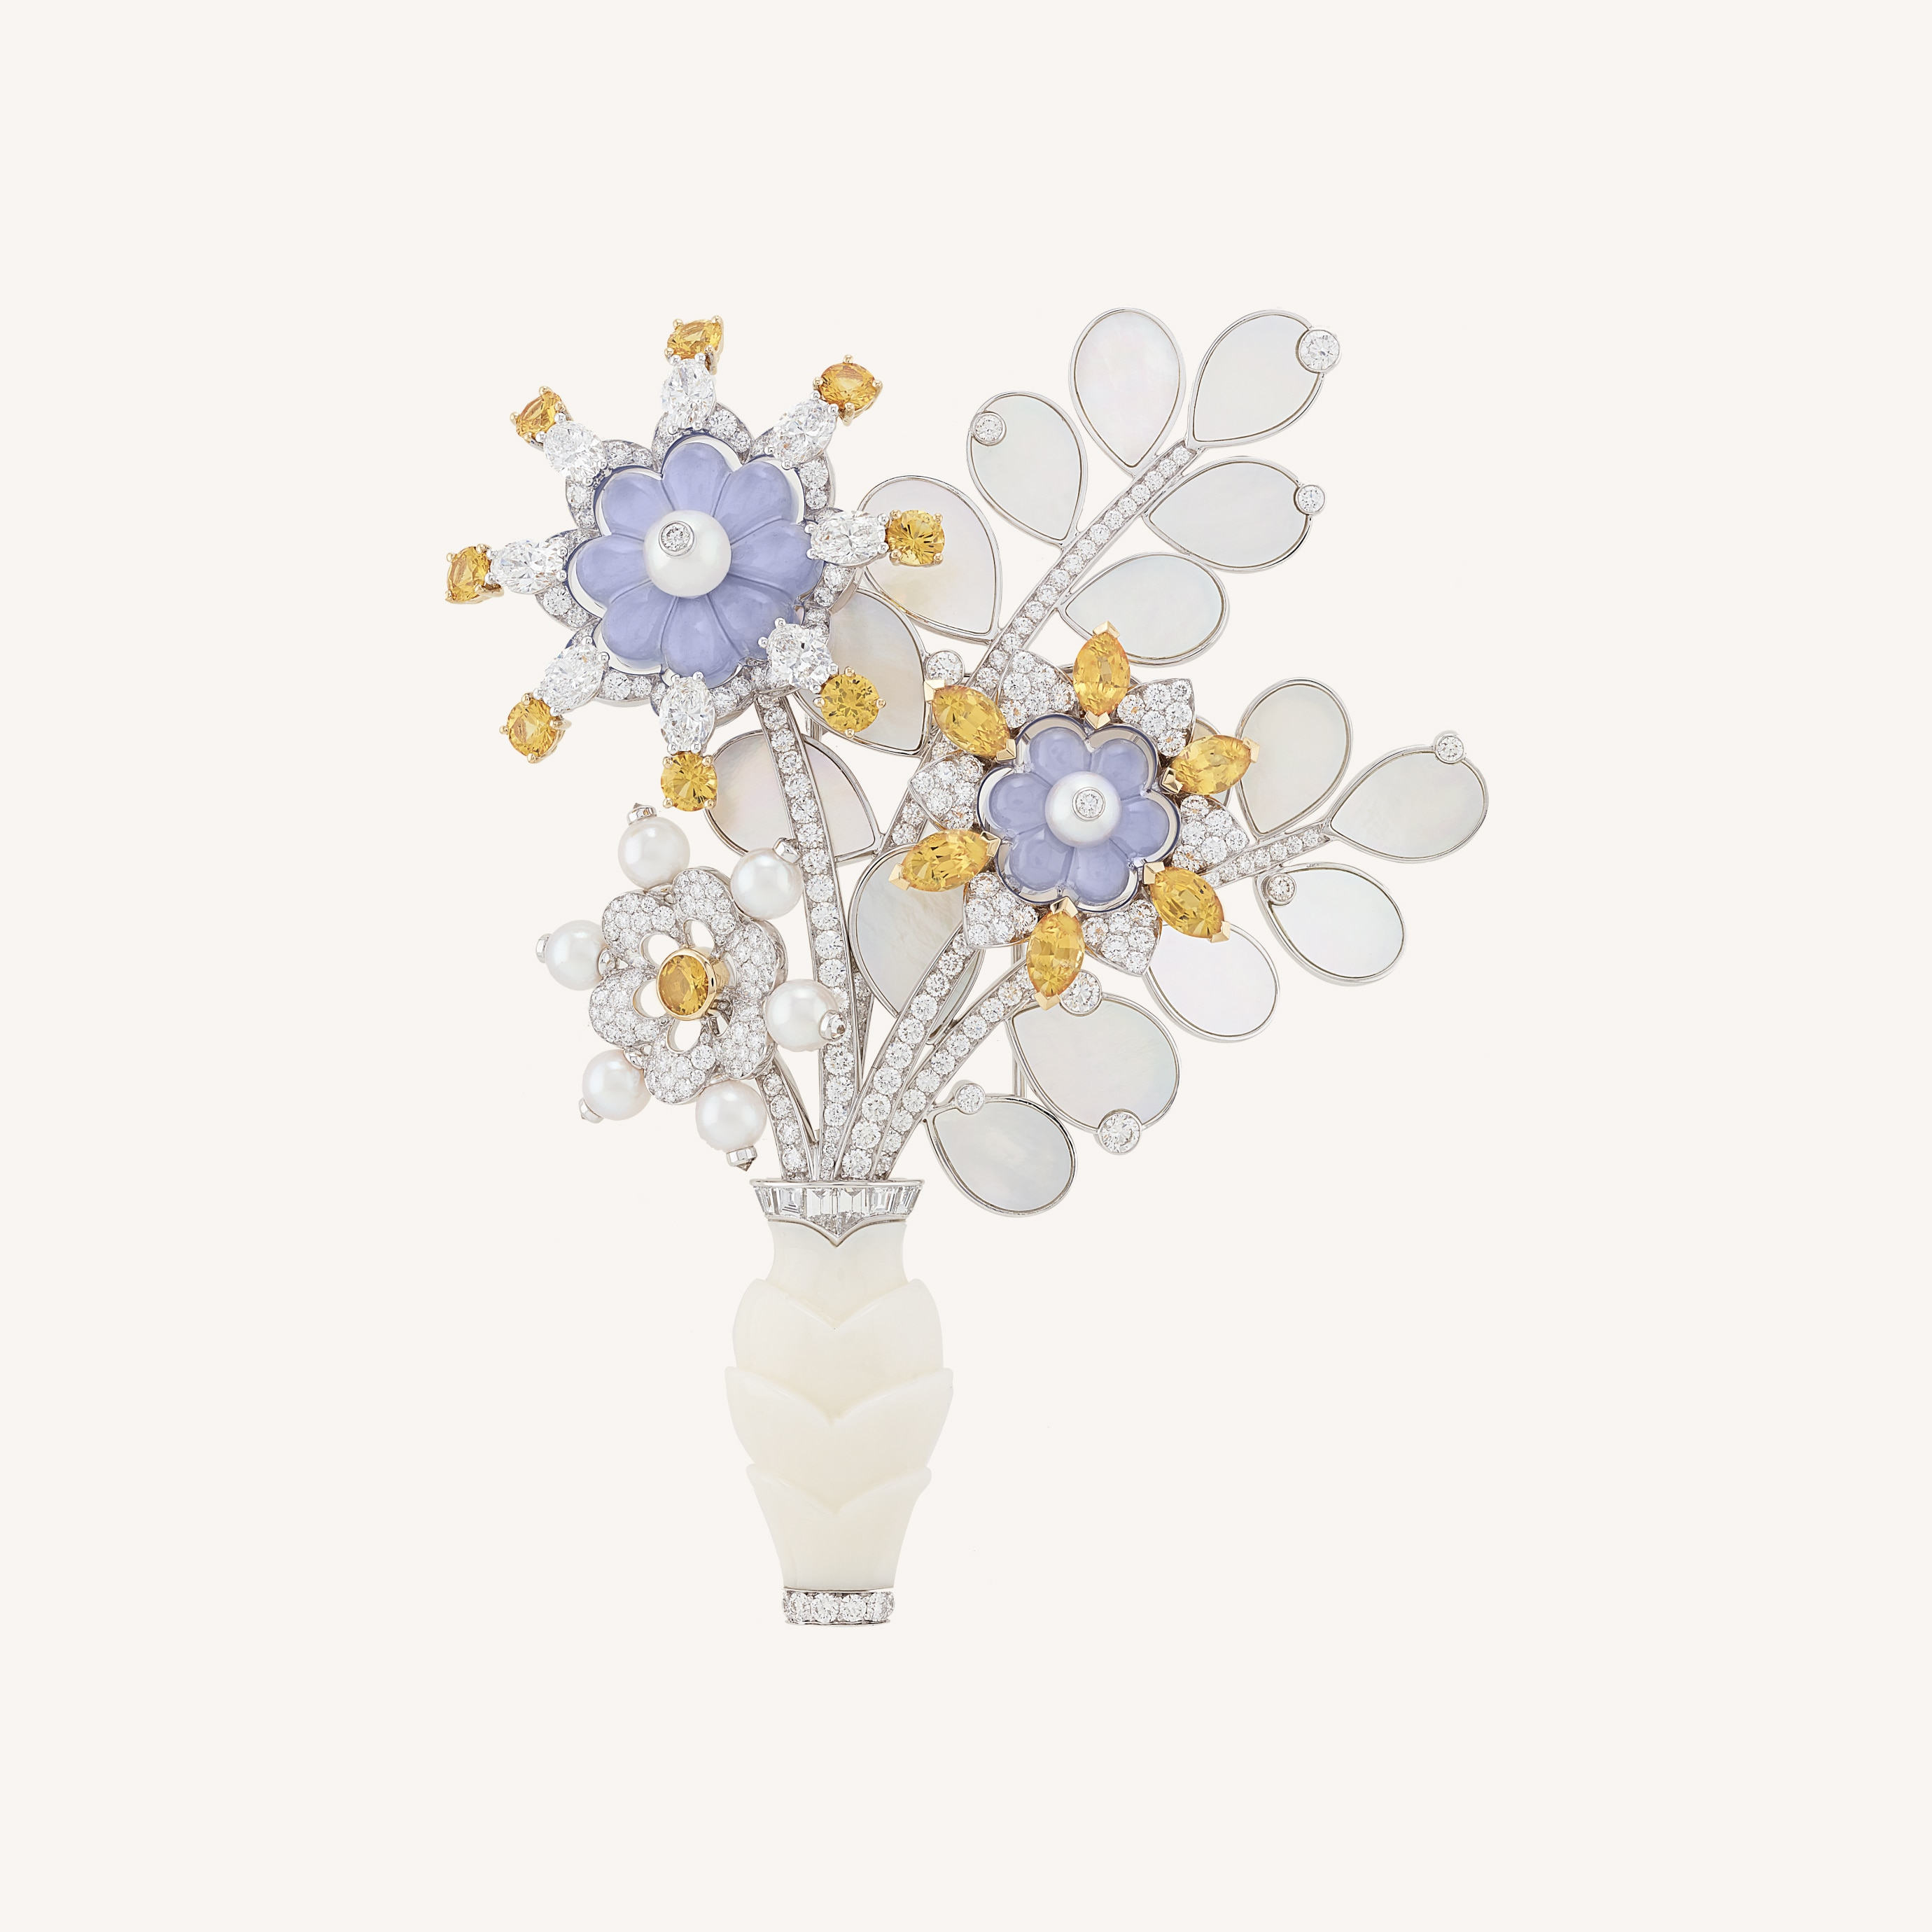 Bouquet de calcédoine clip, White gold, yellow gold, yellow sapphires, white cultured pearls, white coral, chalcedony, white mother-of-pearl, diamonds, Flowers collection, Van Cleef & Arpels